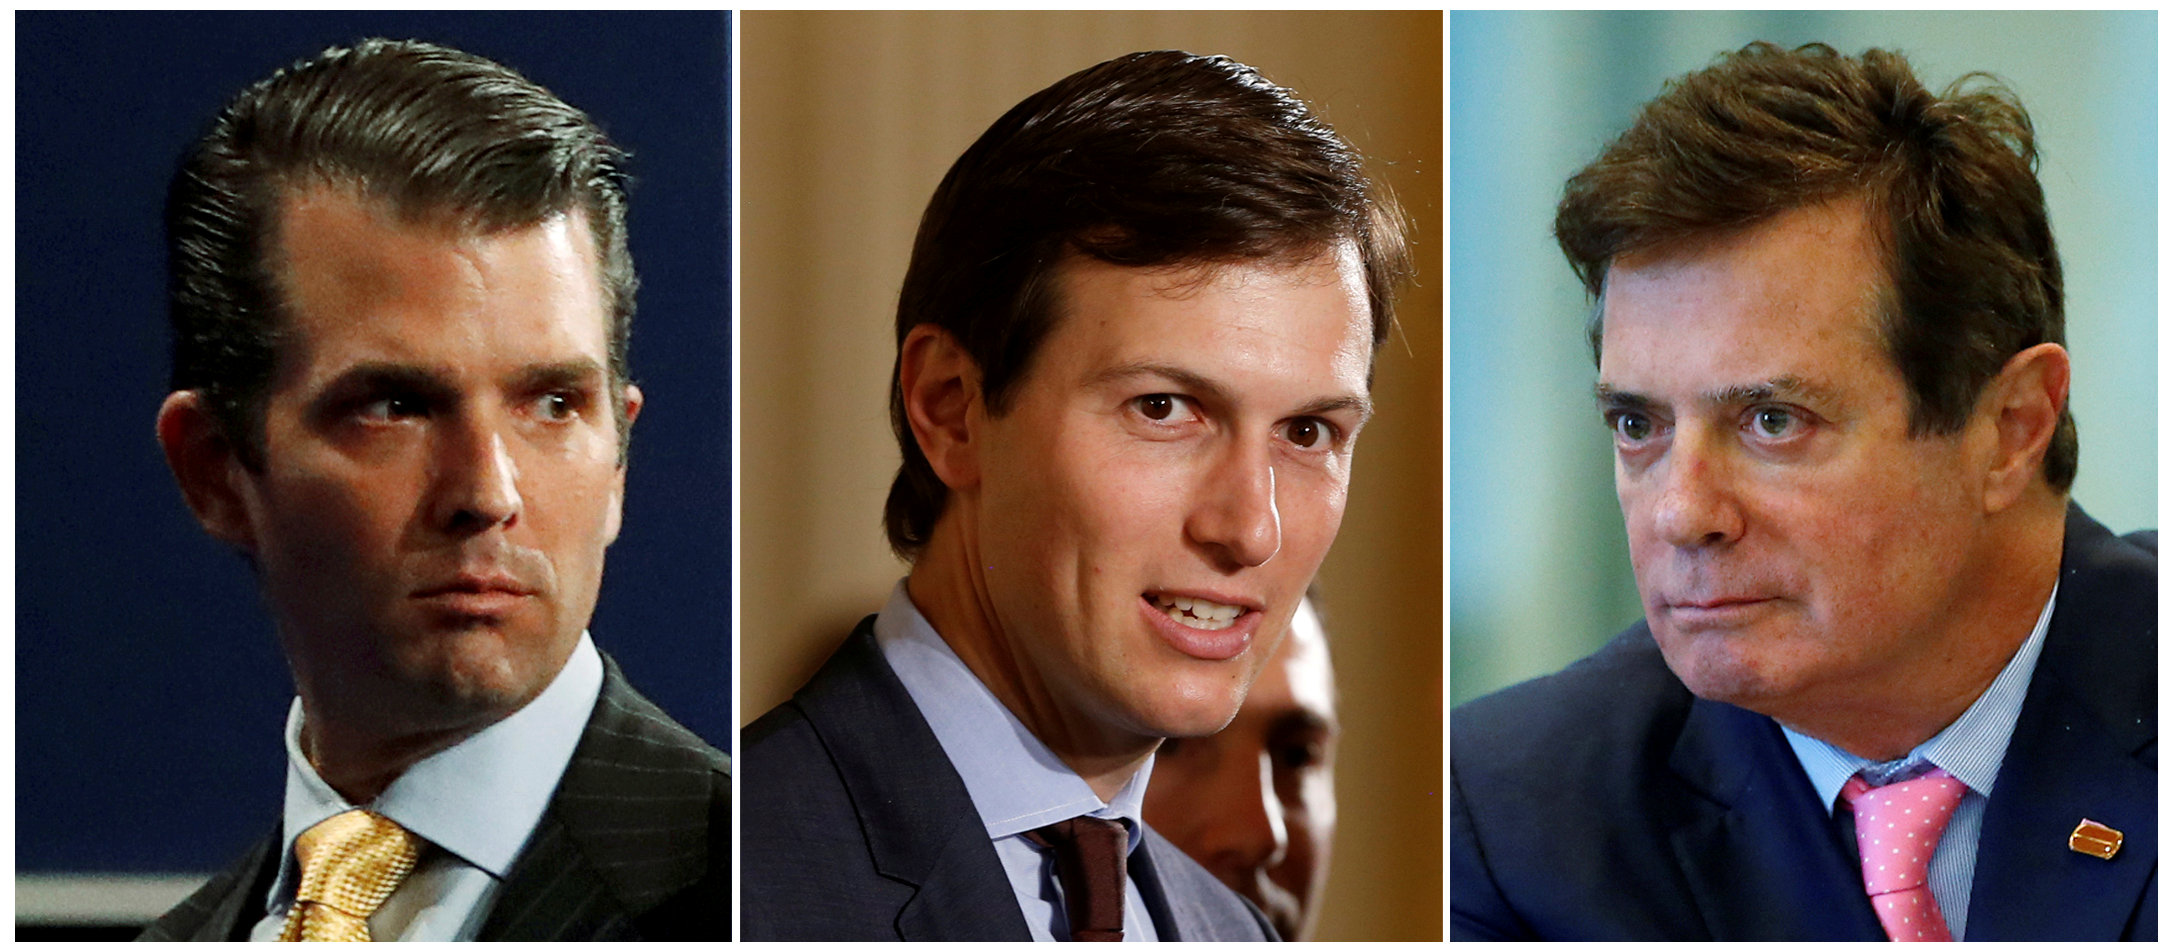 FILE - A combination photo of Donald Trump Jr. from July 11, 2017, Jared Kushner from June 6, 2017 and Paul Manafort from Aug. 17, 2016.